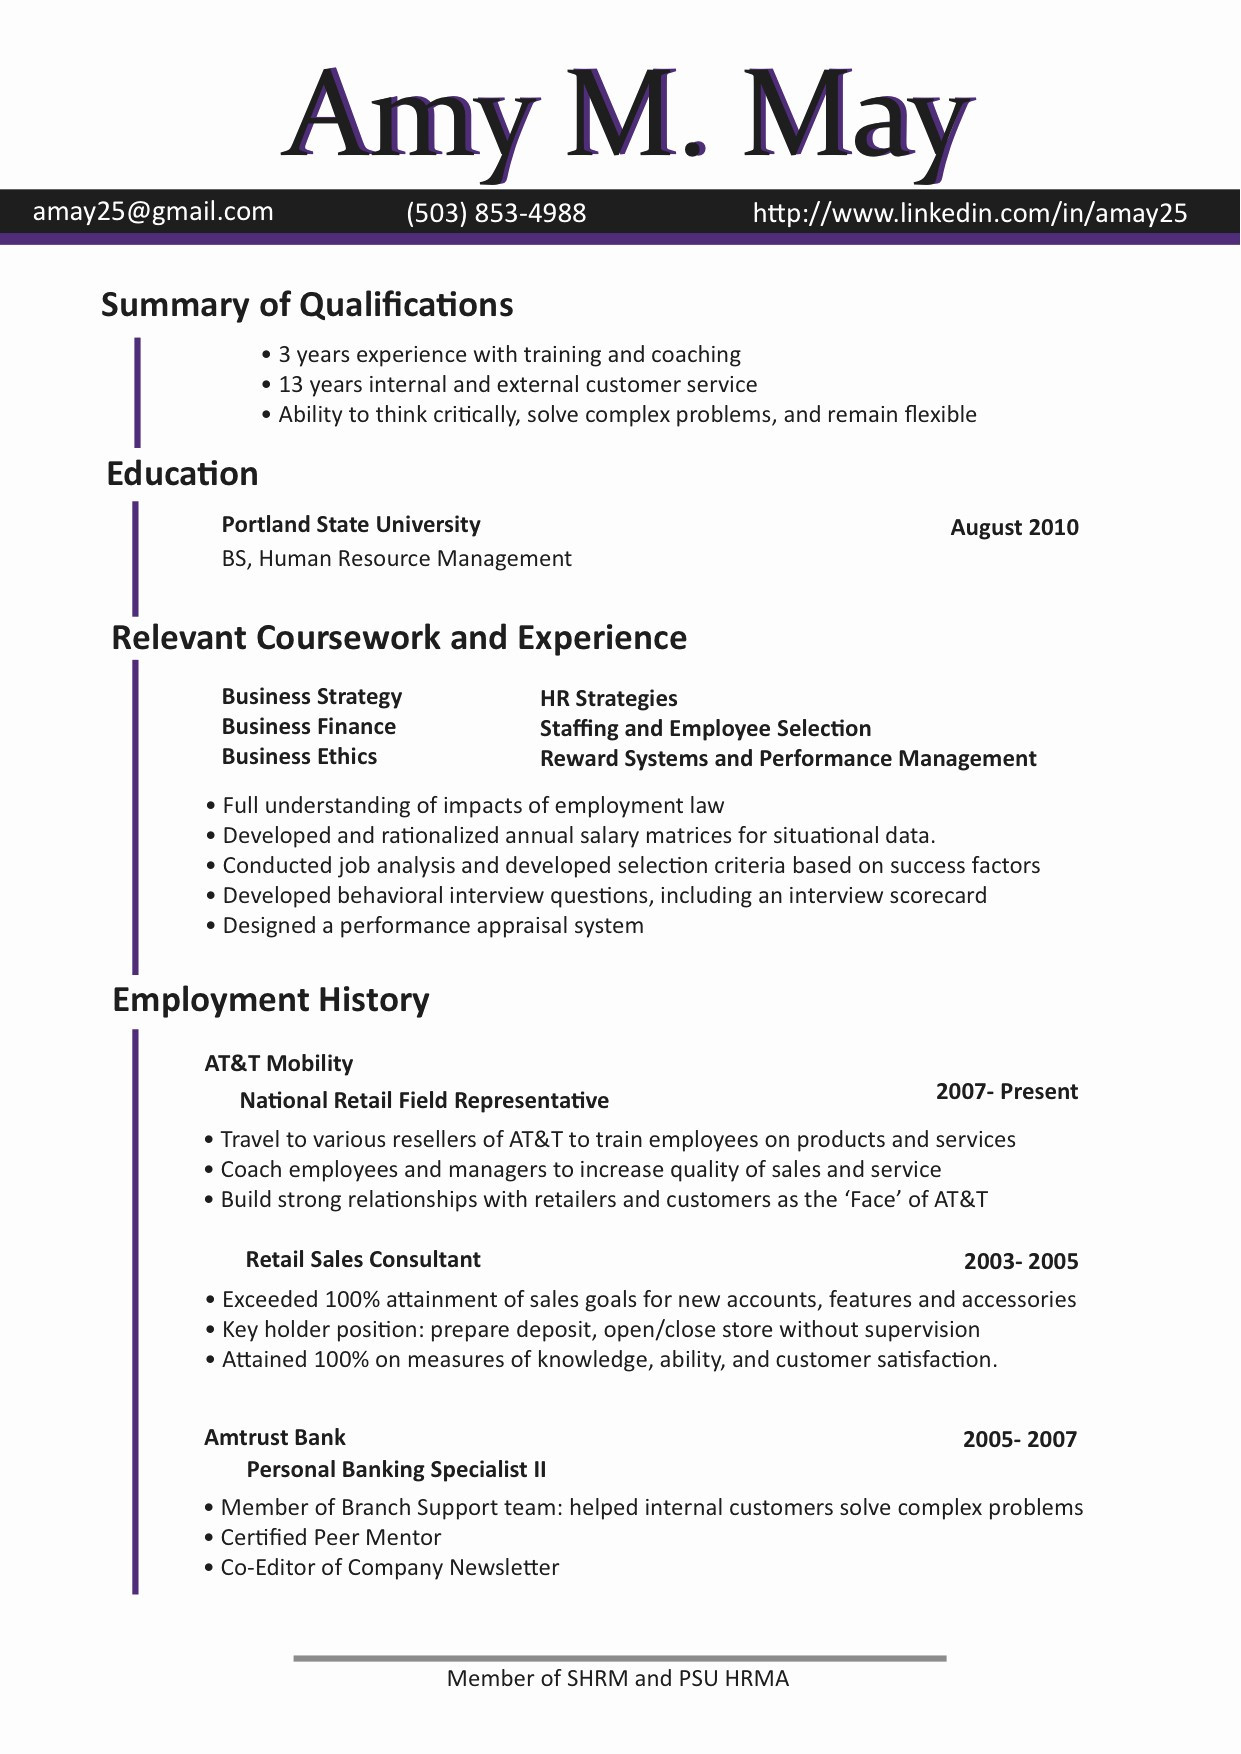 Search Resumes Free - Free Resume Search Sites for Employers Example New Programmer